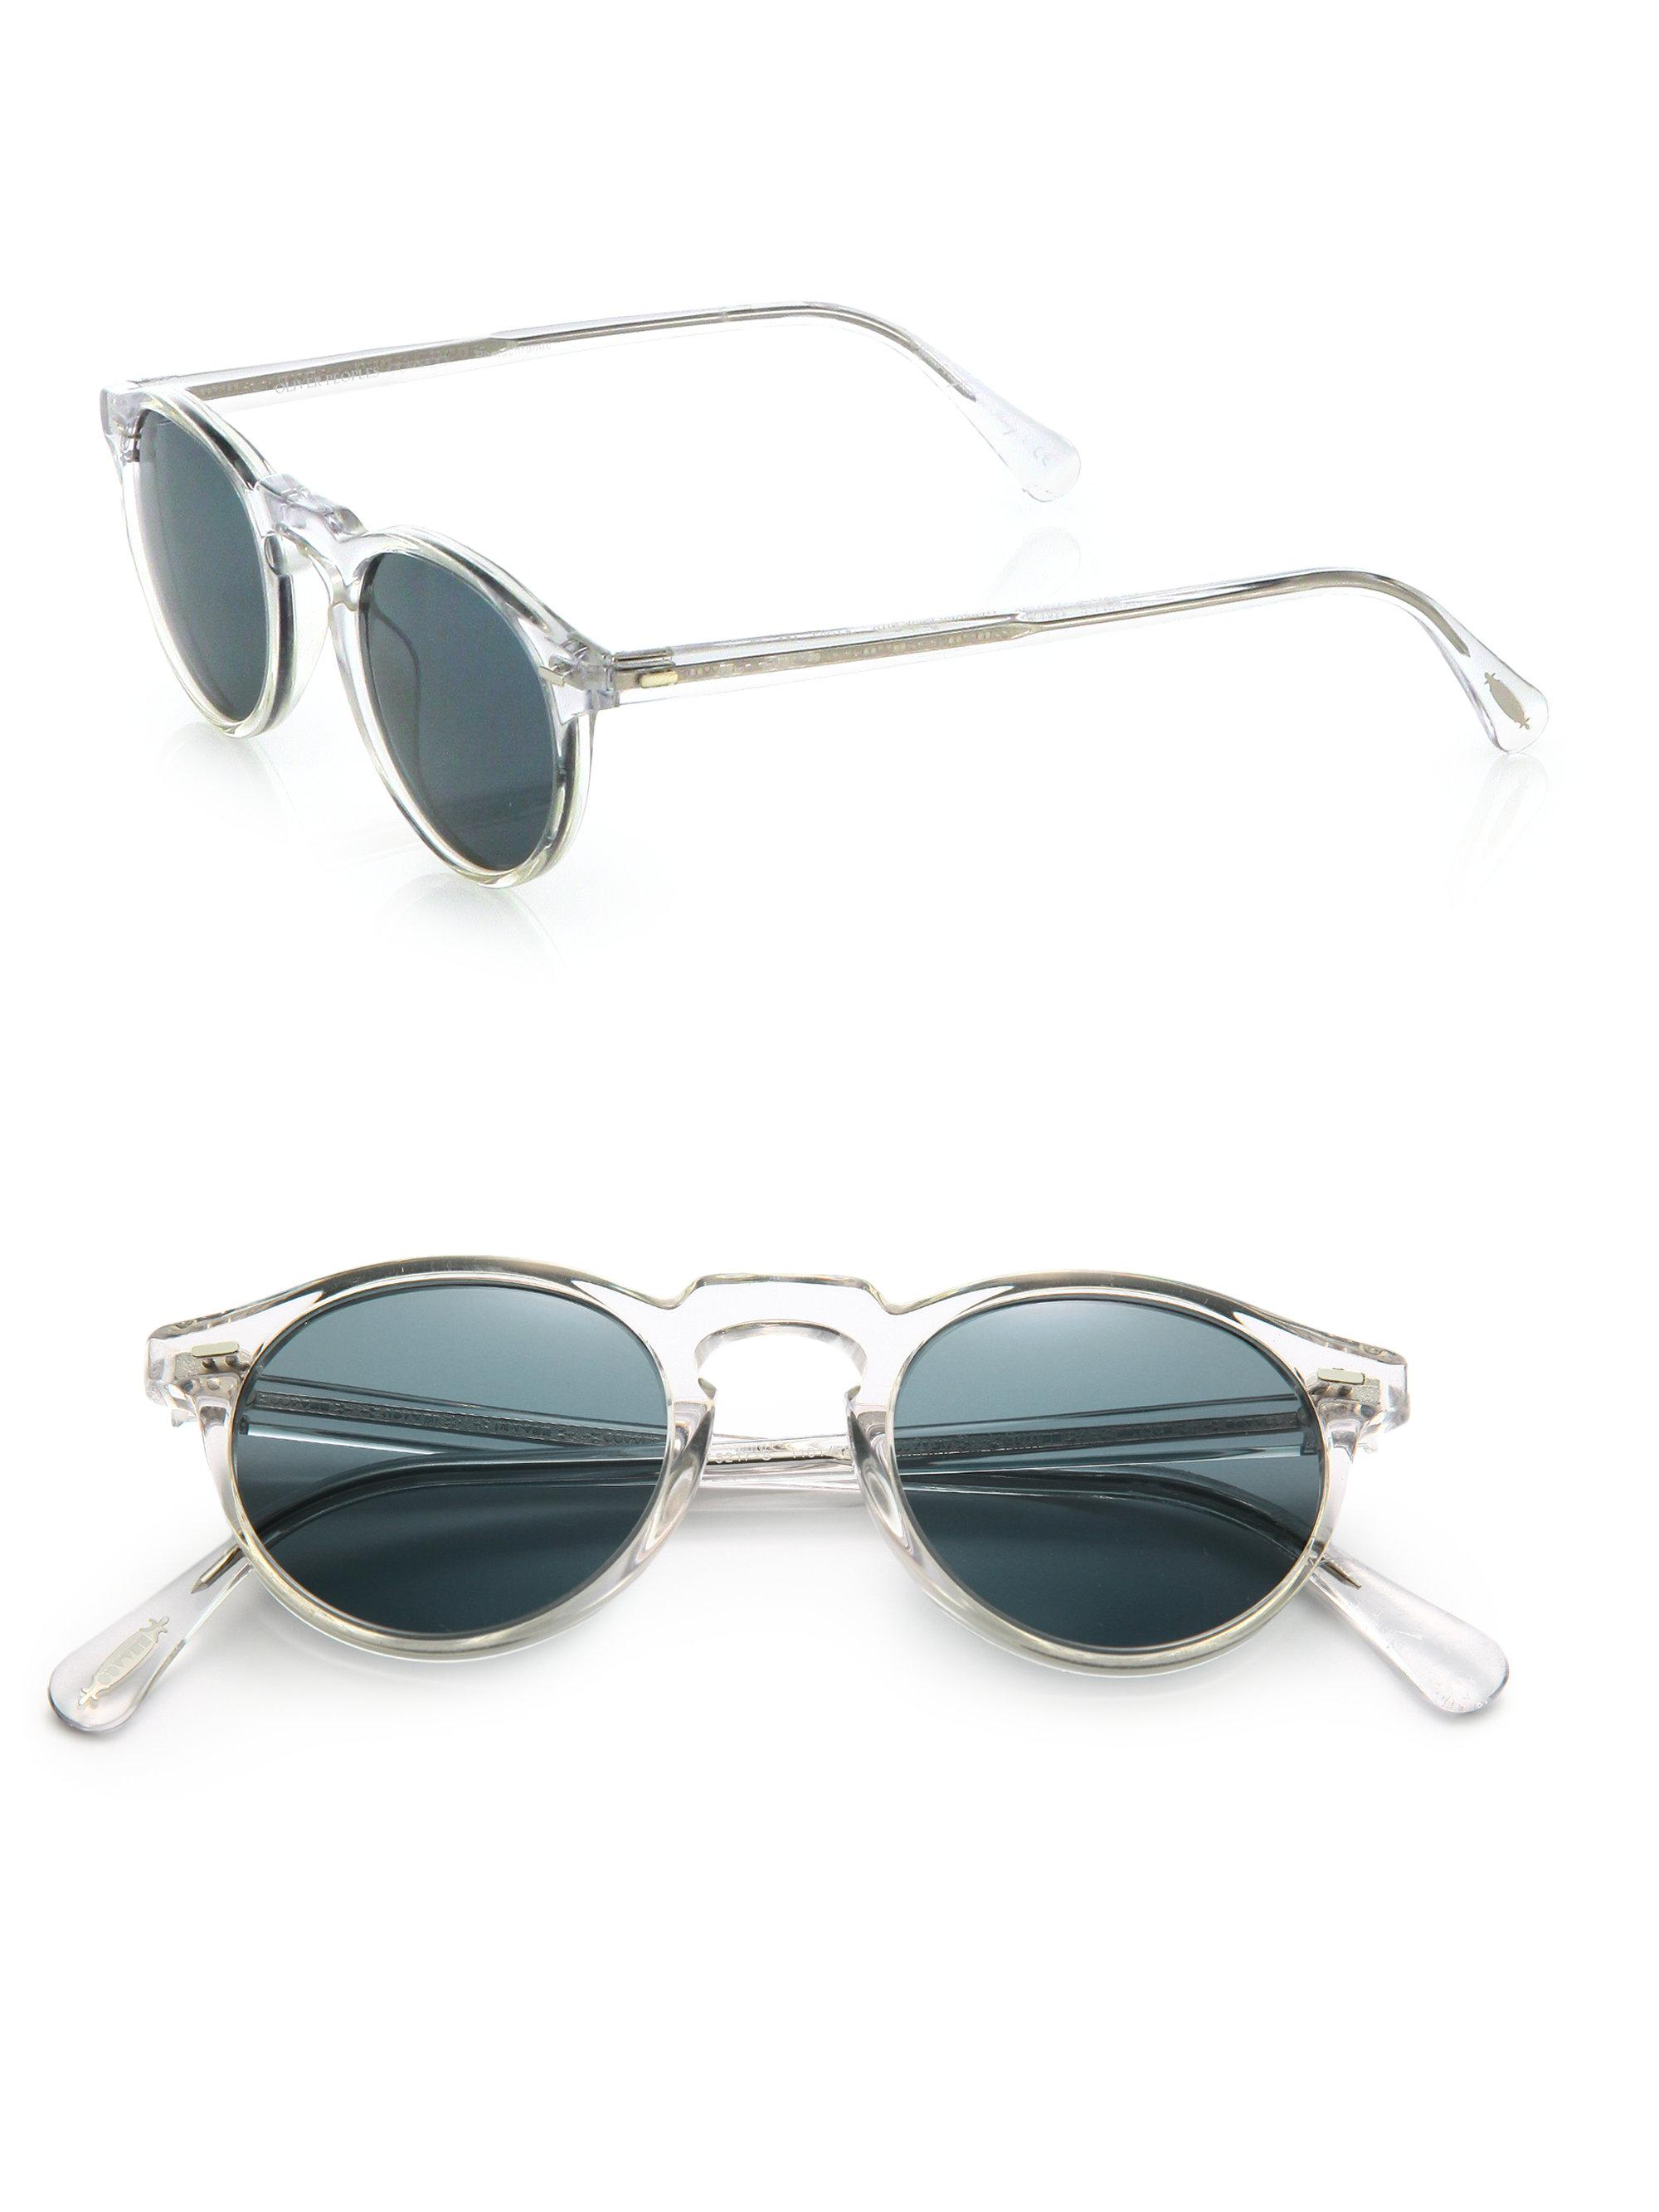 02812af948 Oliver Peoples Men s Gregory Peck 47mm Acetate Sunglasses - Lucite ...